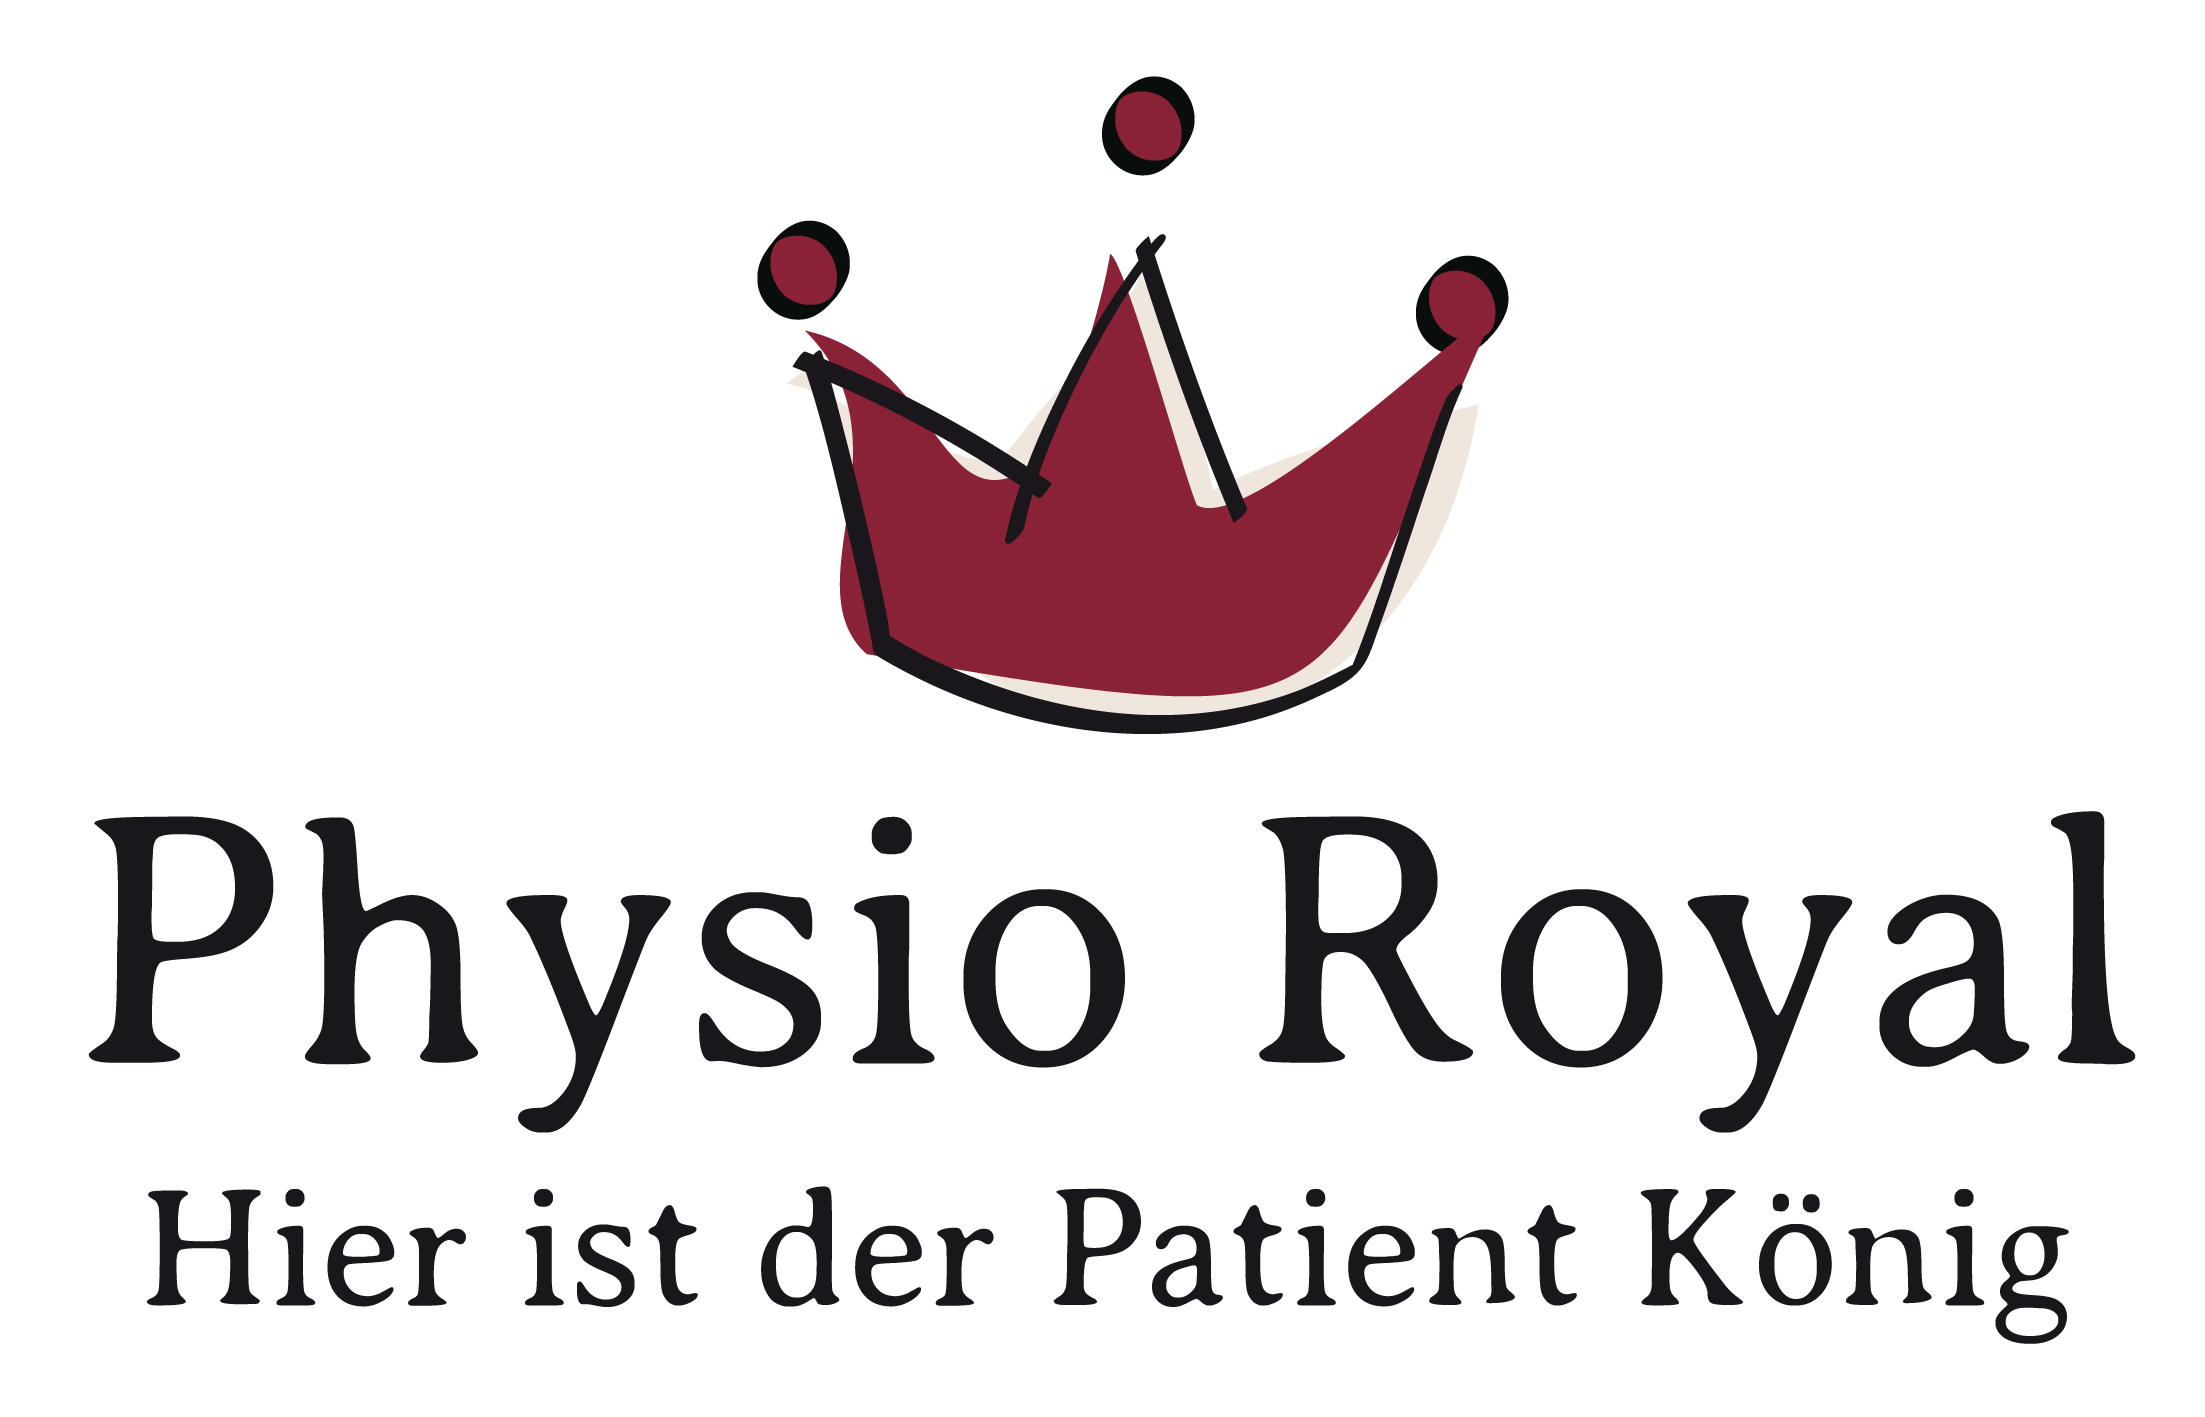 Physio Royal Roßdorf